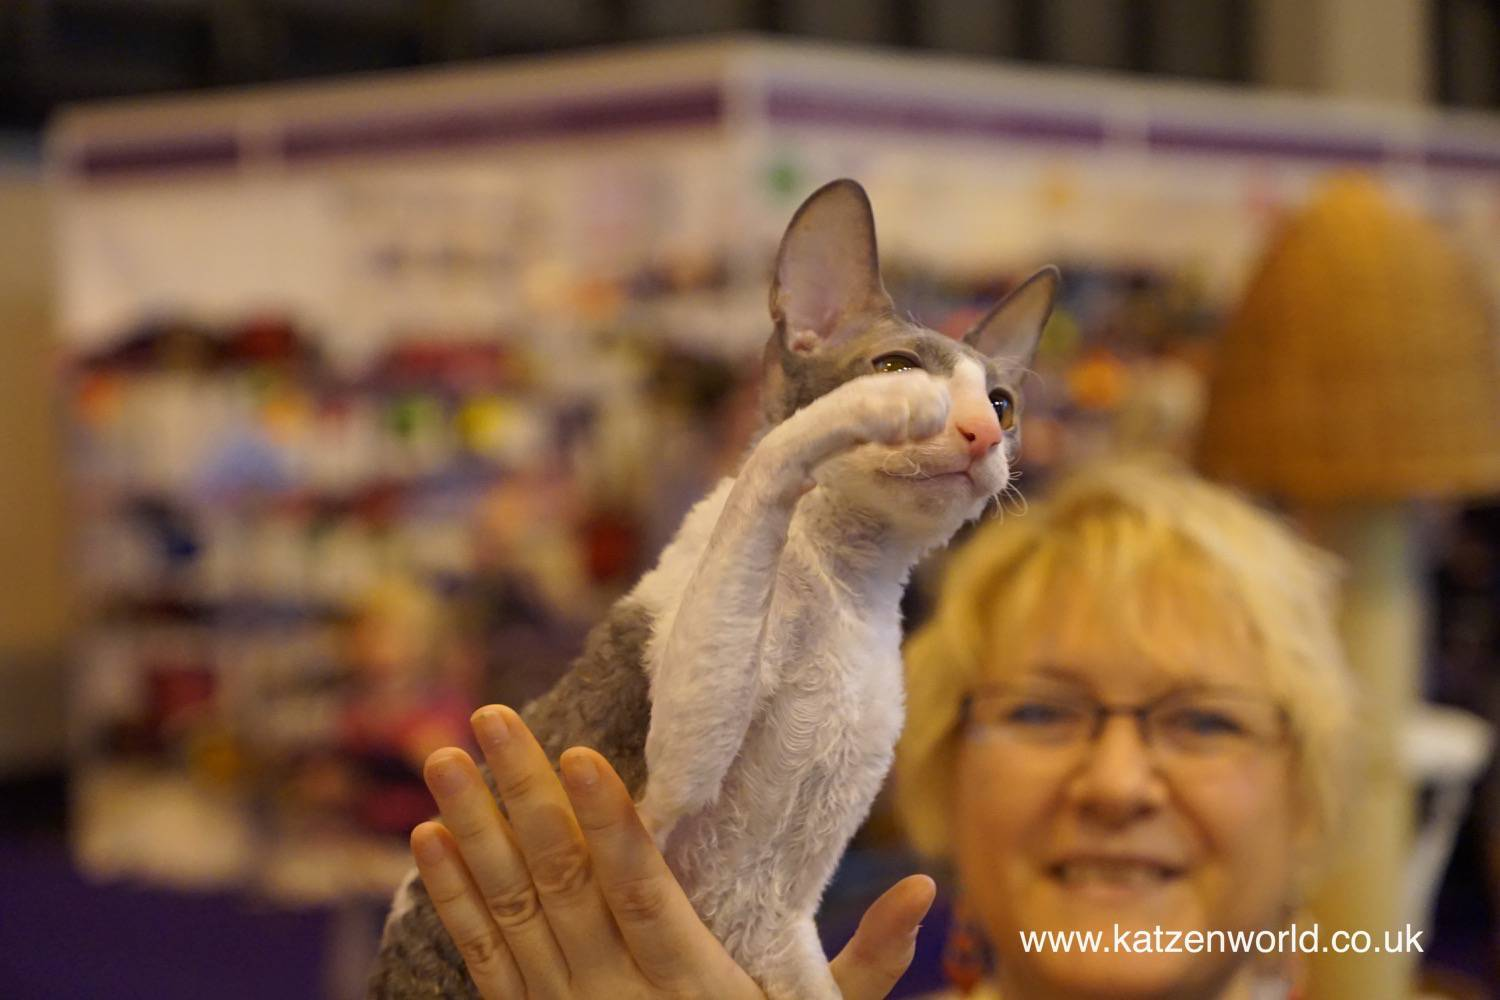 Events: A Rex Cat at the National Pet Show